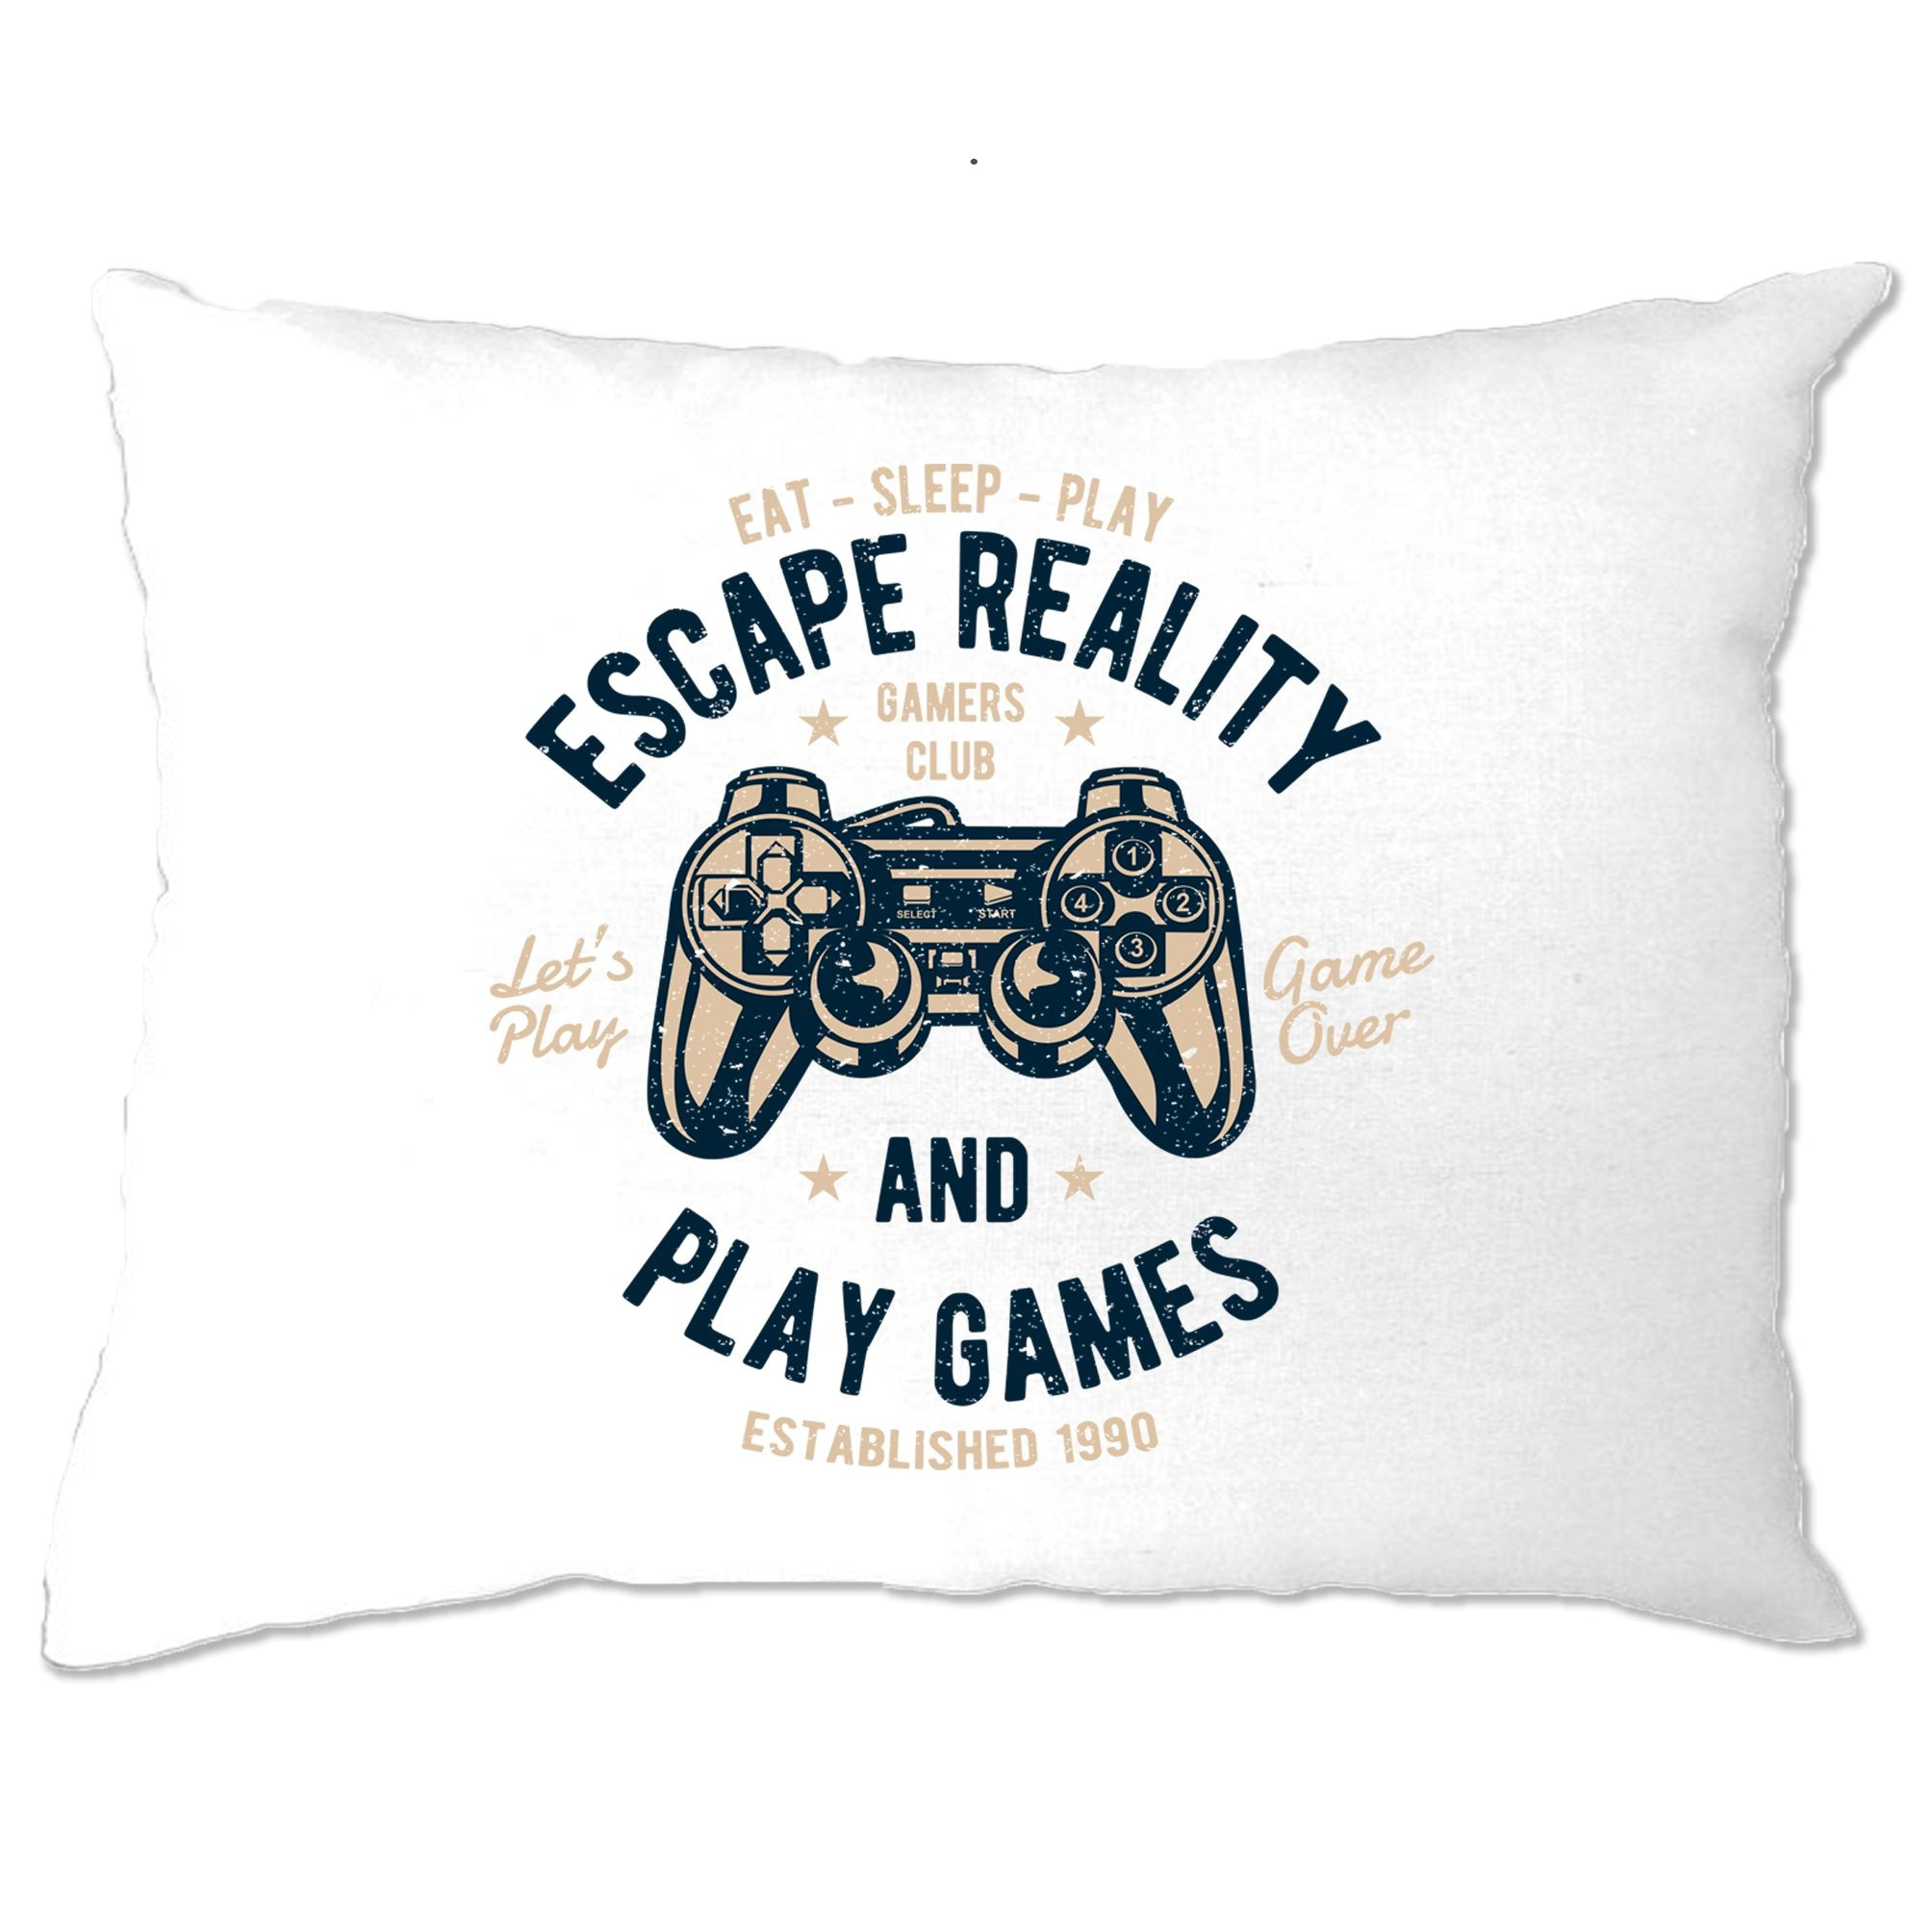 Retro Gamer Art Pillow Case Escape Reality And Play Games